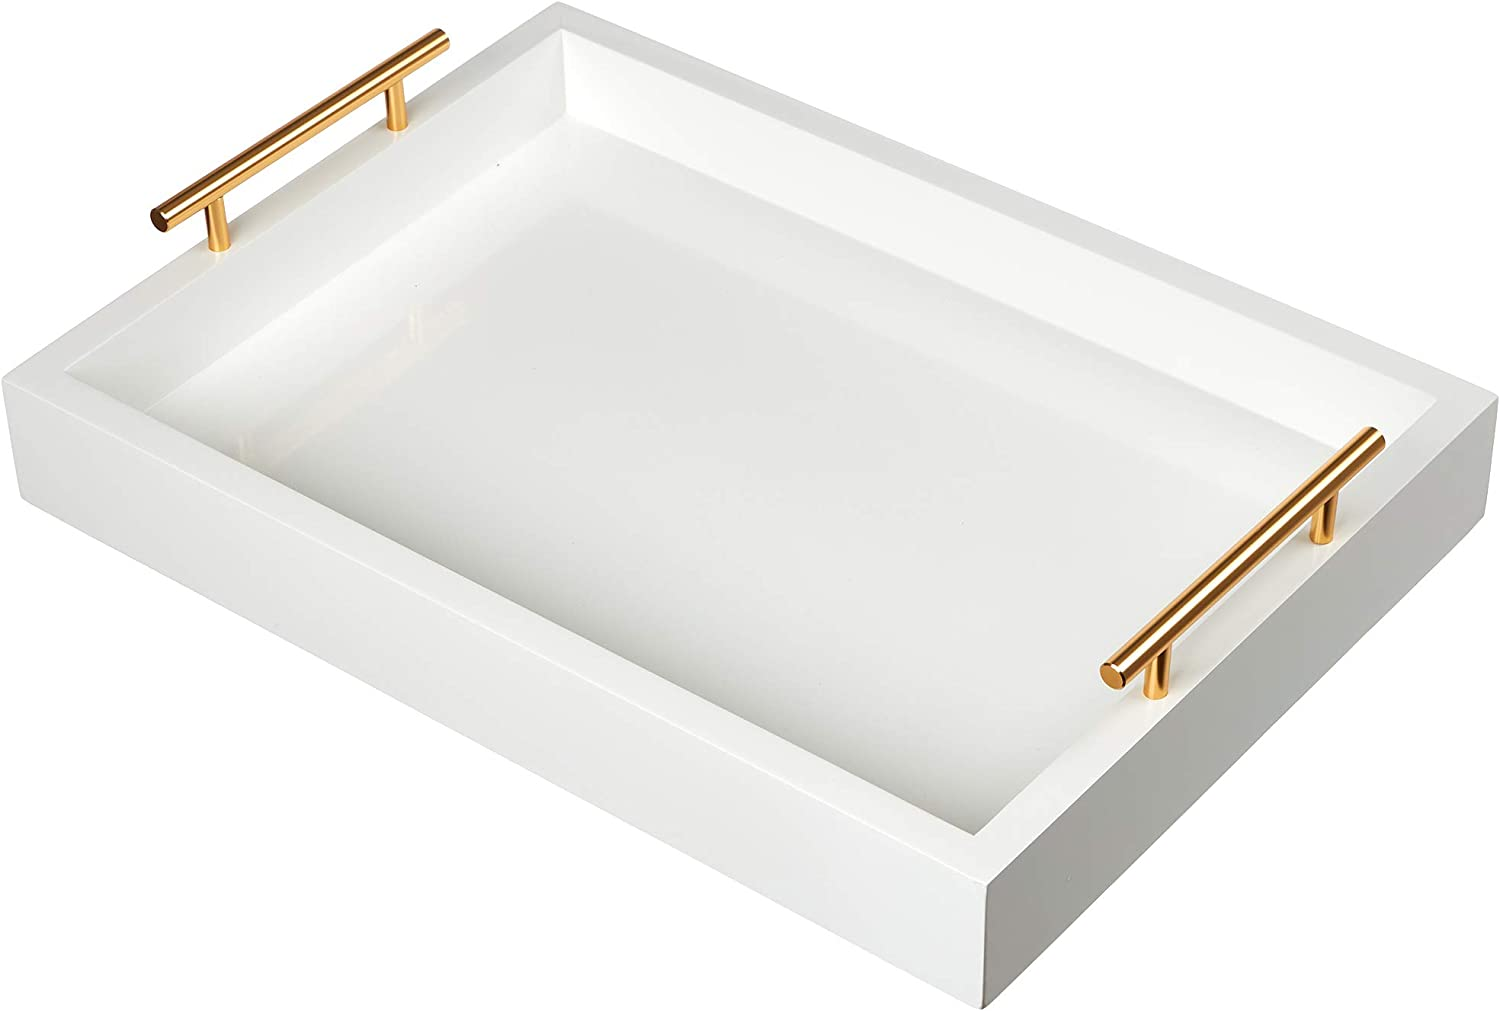 General King Merchandise Elegant Scratch Resistant Decorative Serving Tray For Food And Drinks Pearl White With Polished Gold Handles Amazon Co Uk Kitchen Home